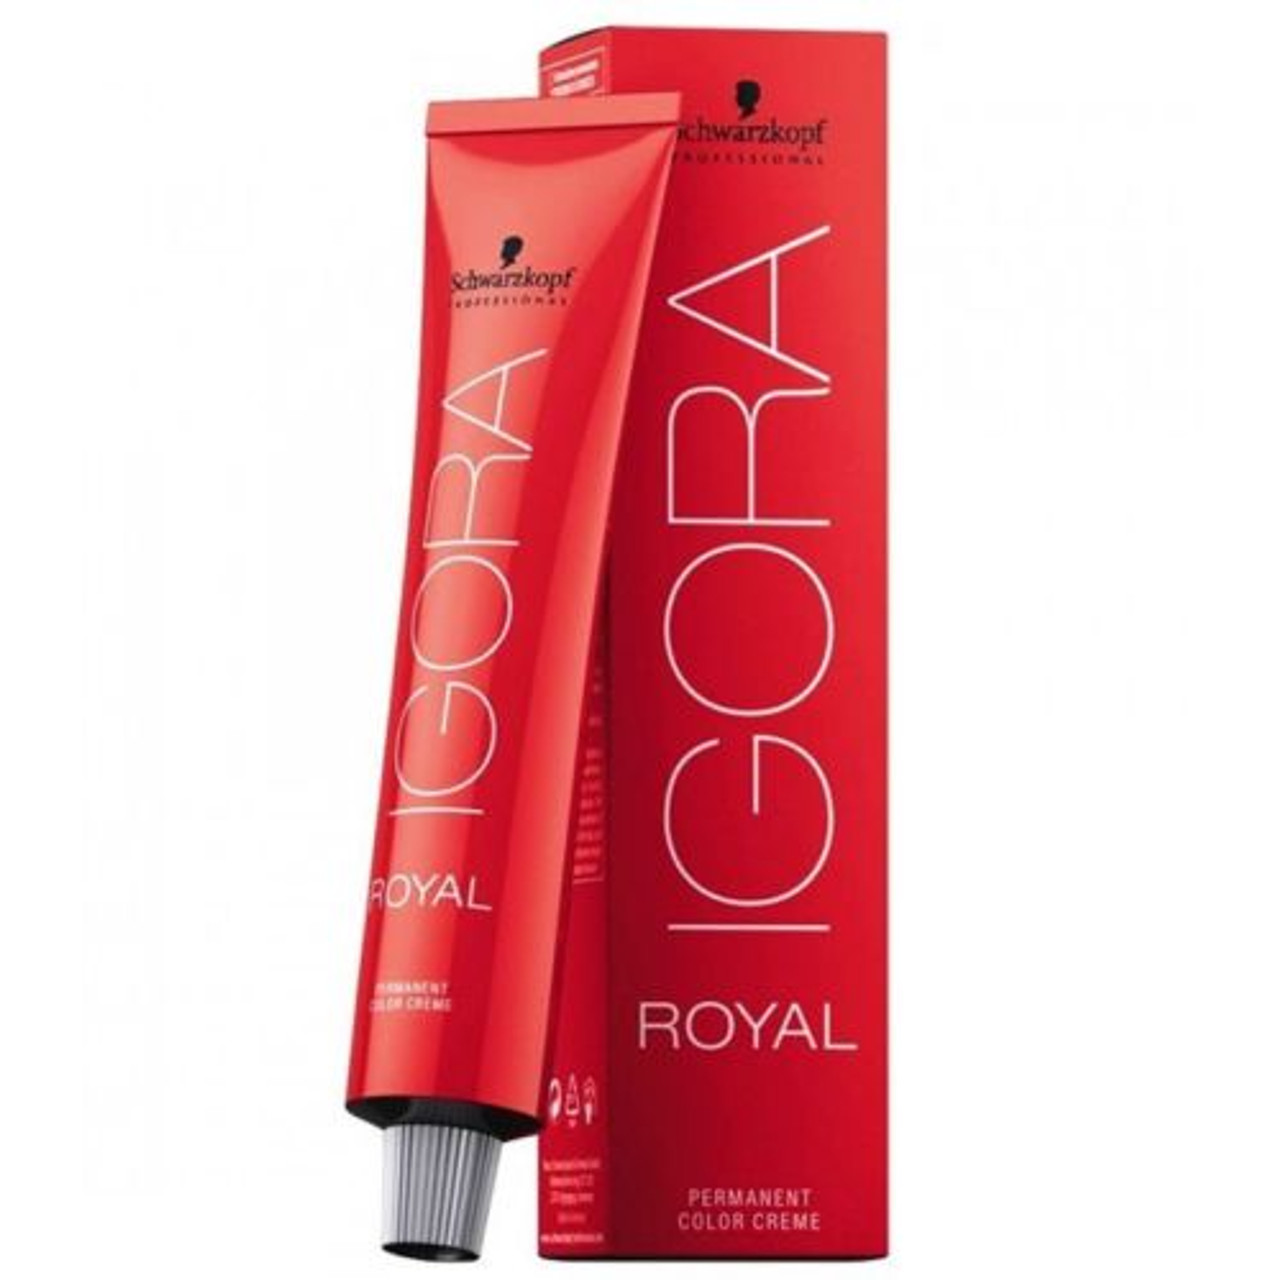 Schwarzkopf Igora Royal Permanent Color Creme - 8-65 Light Auburn Brown